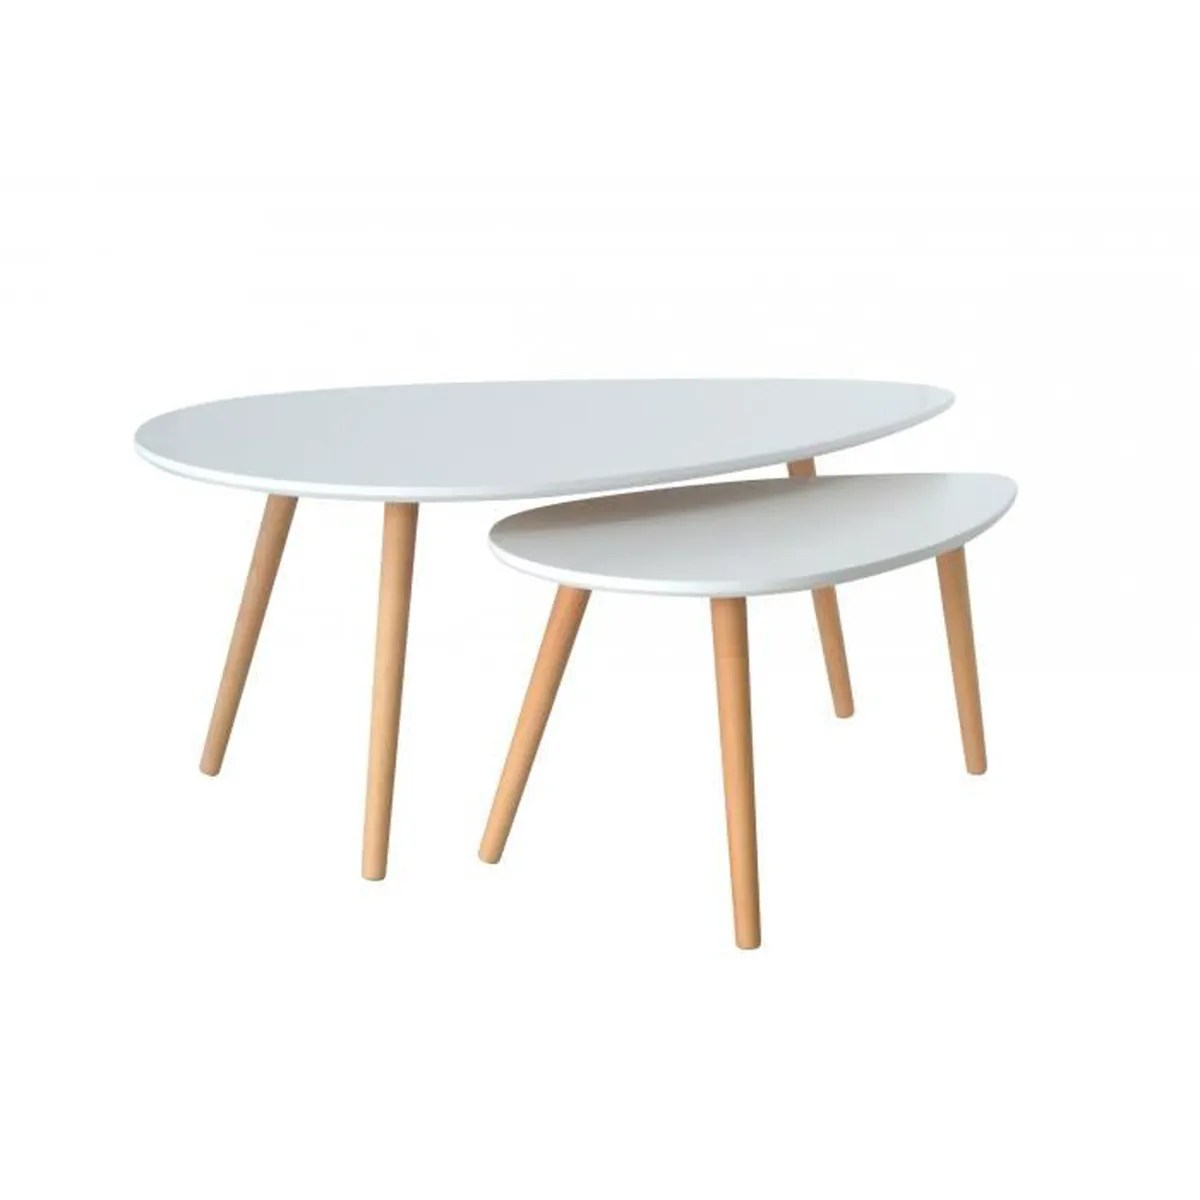 Tables Basses De Salon Pliantes Table Basse Scandinave Blanc Avesta Achat Vente Table